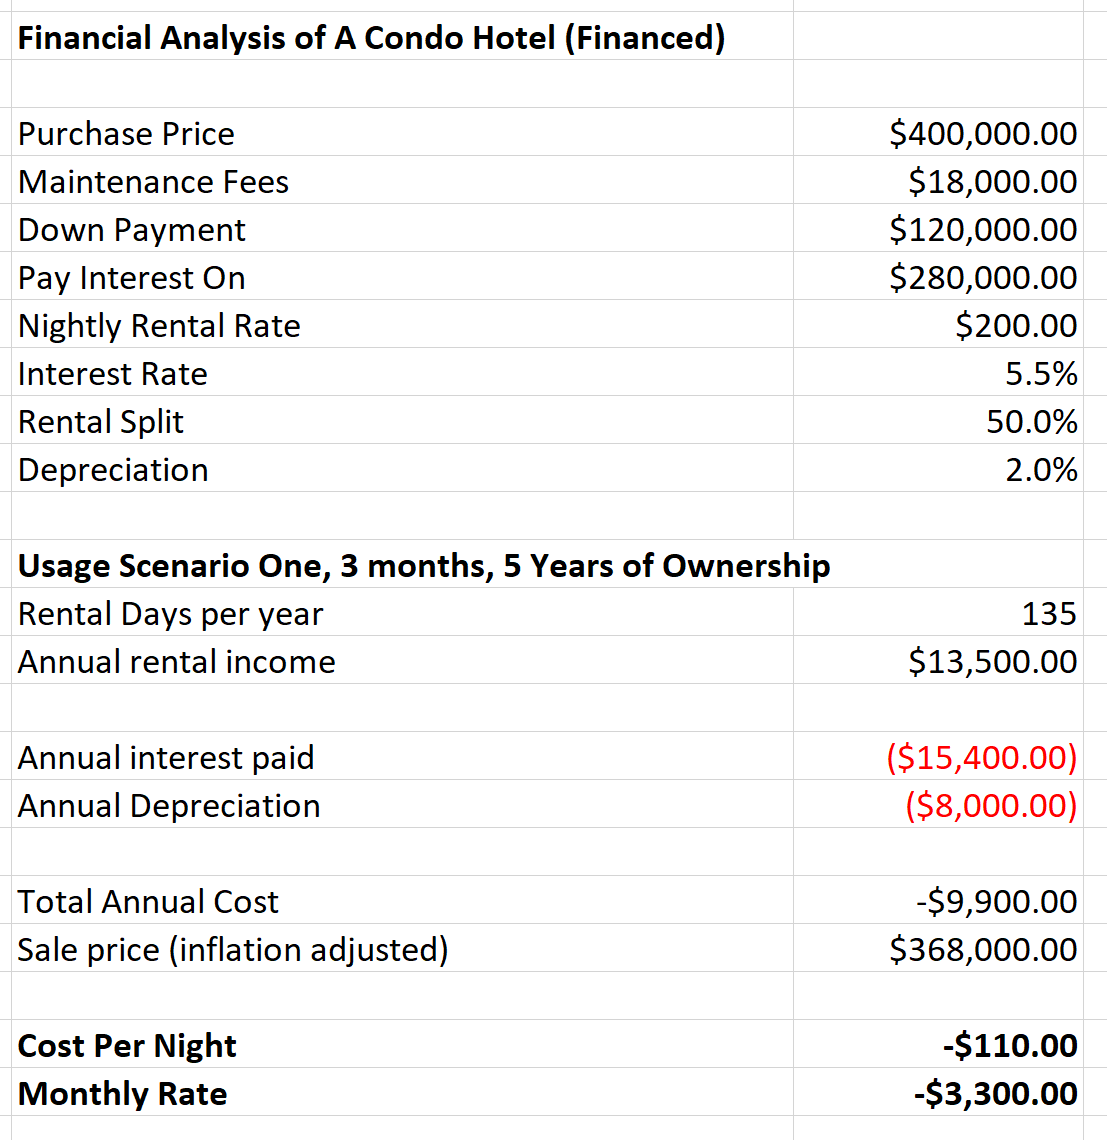 financial analysis of a condo hotel